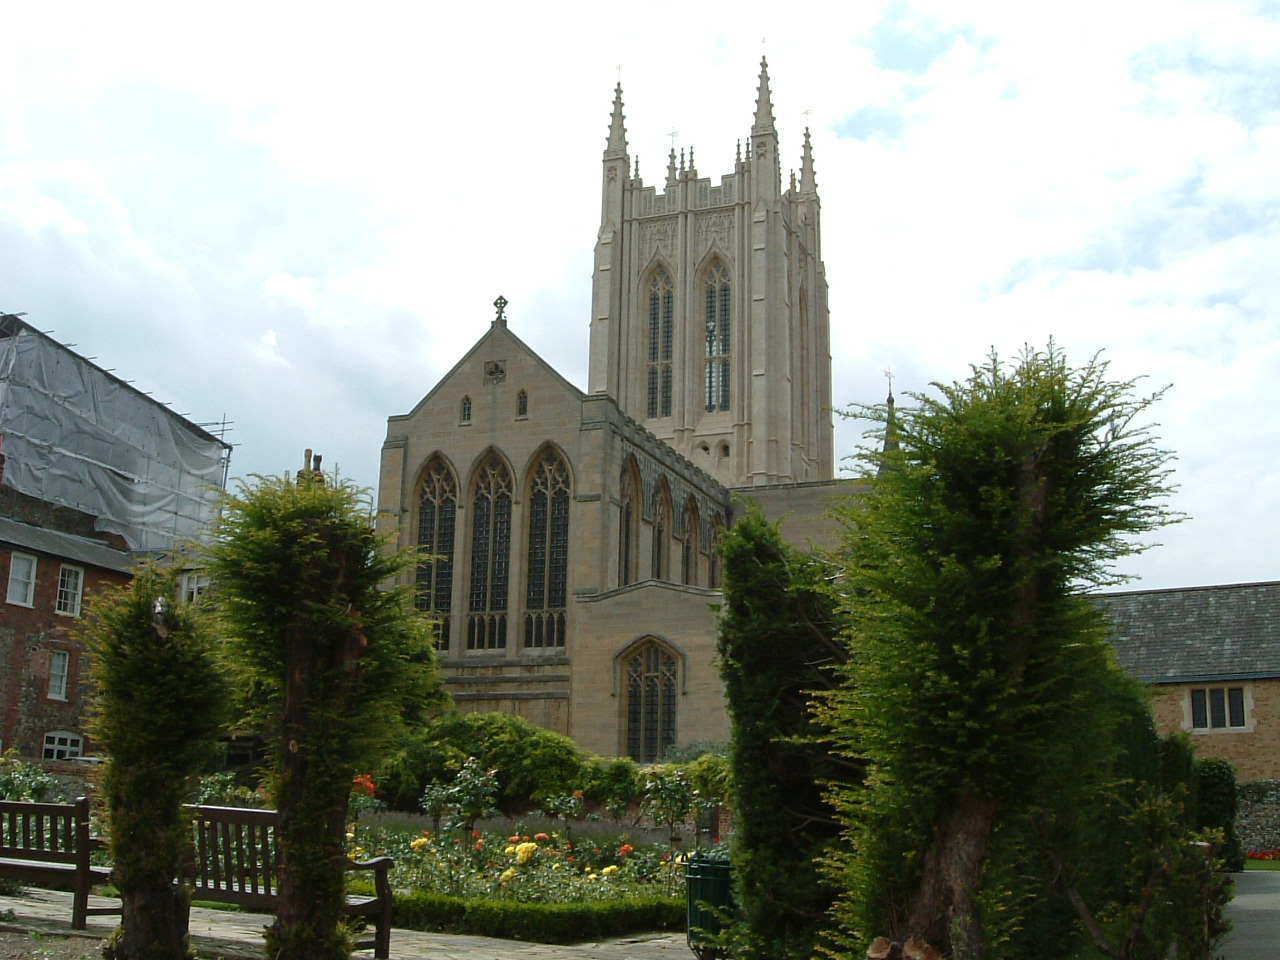 Bury Saint Edmunds United Kingdom  city photos gallery : St Edmundsbury Cathedral from Bury Saint Edmunds, United Kingdom